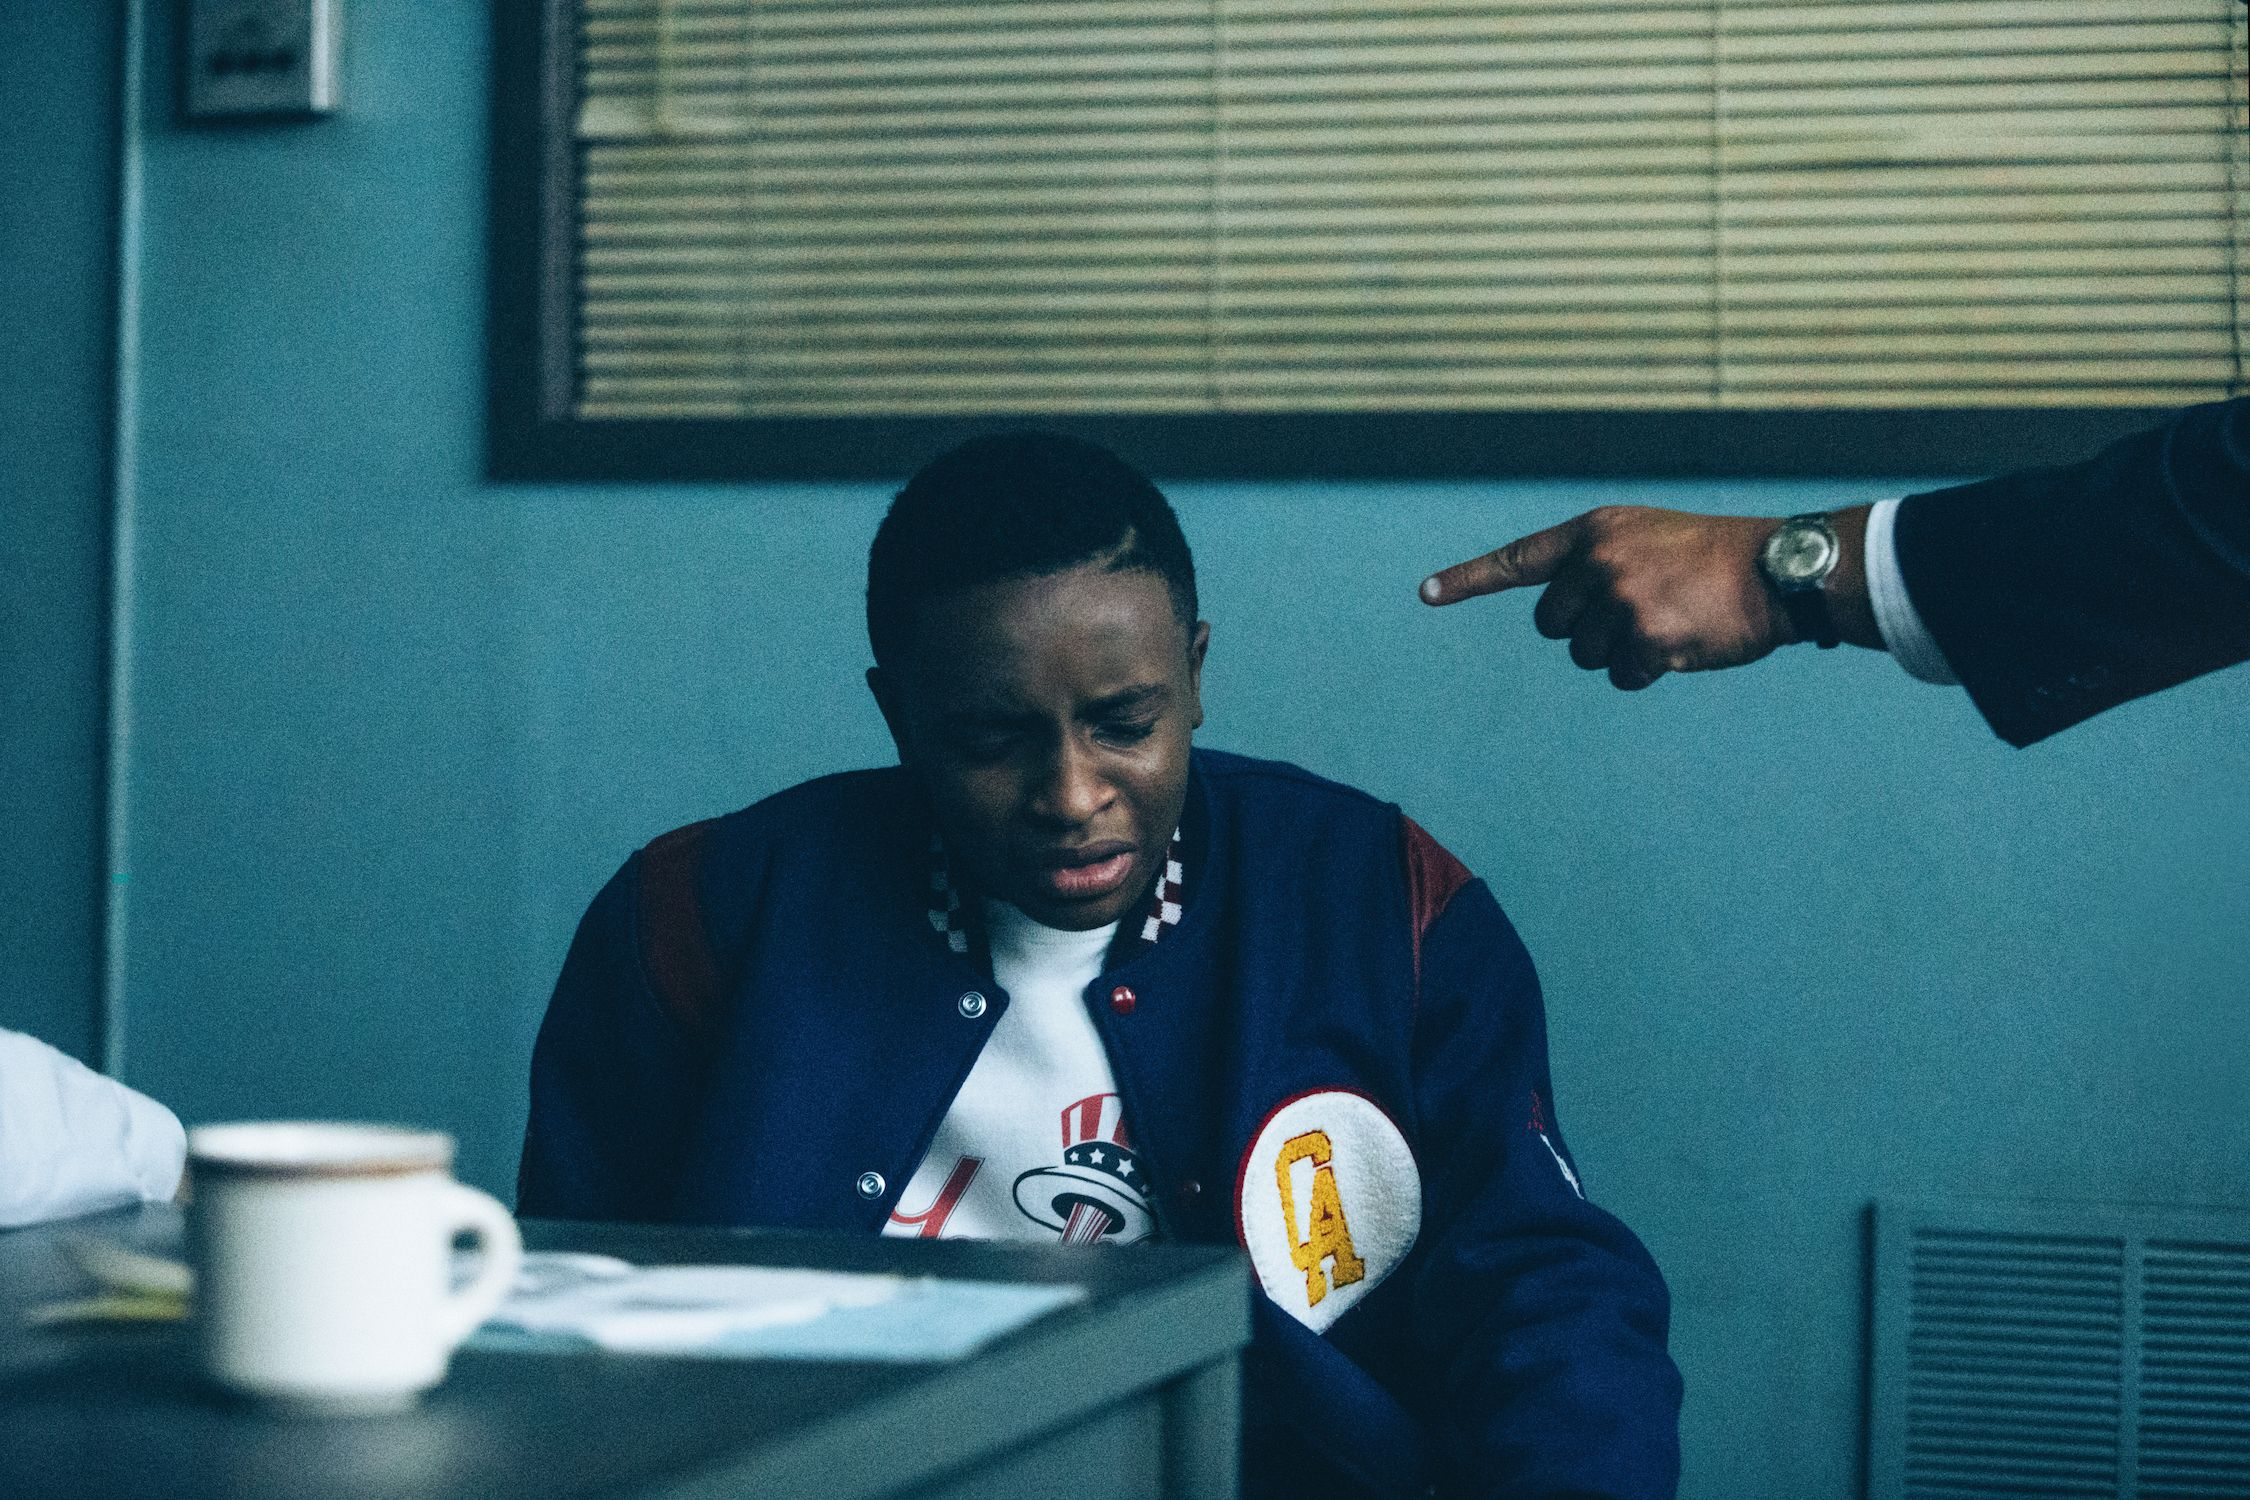 Netflix Is Being Sued For Its Depiction of Controversial Interrogation Techniques in When They See Us